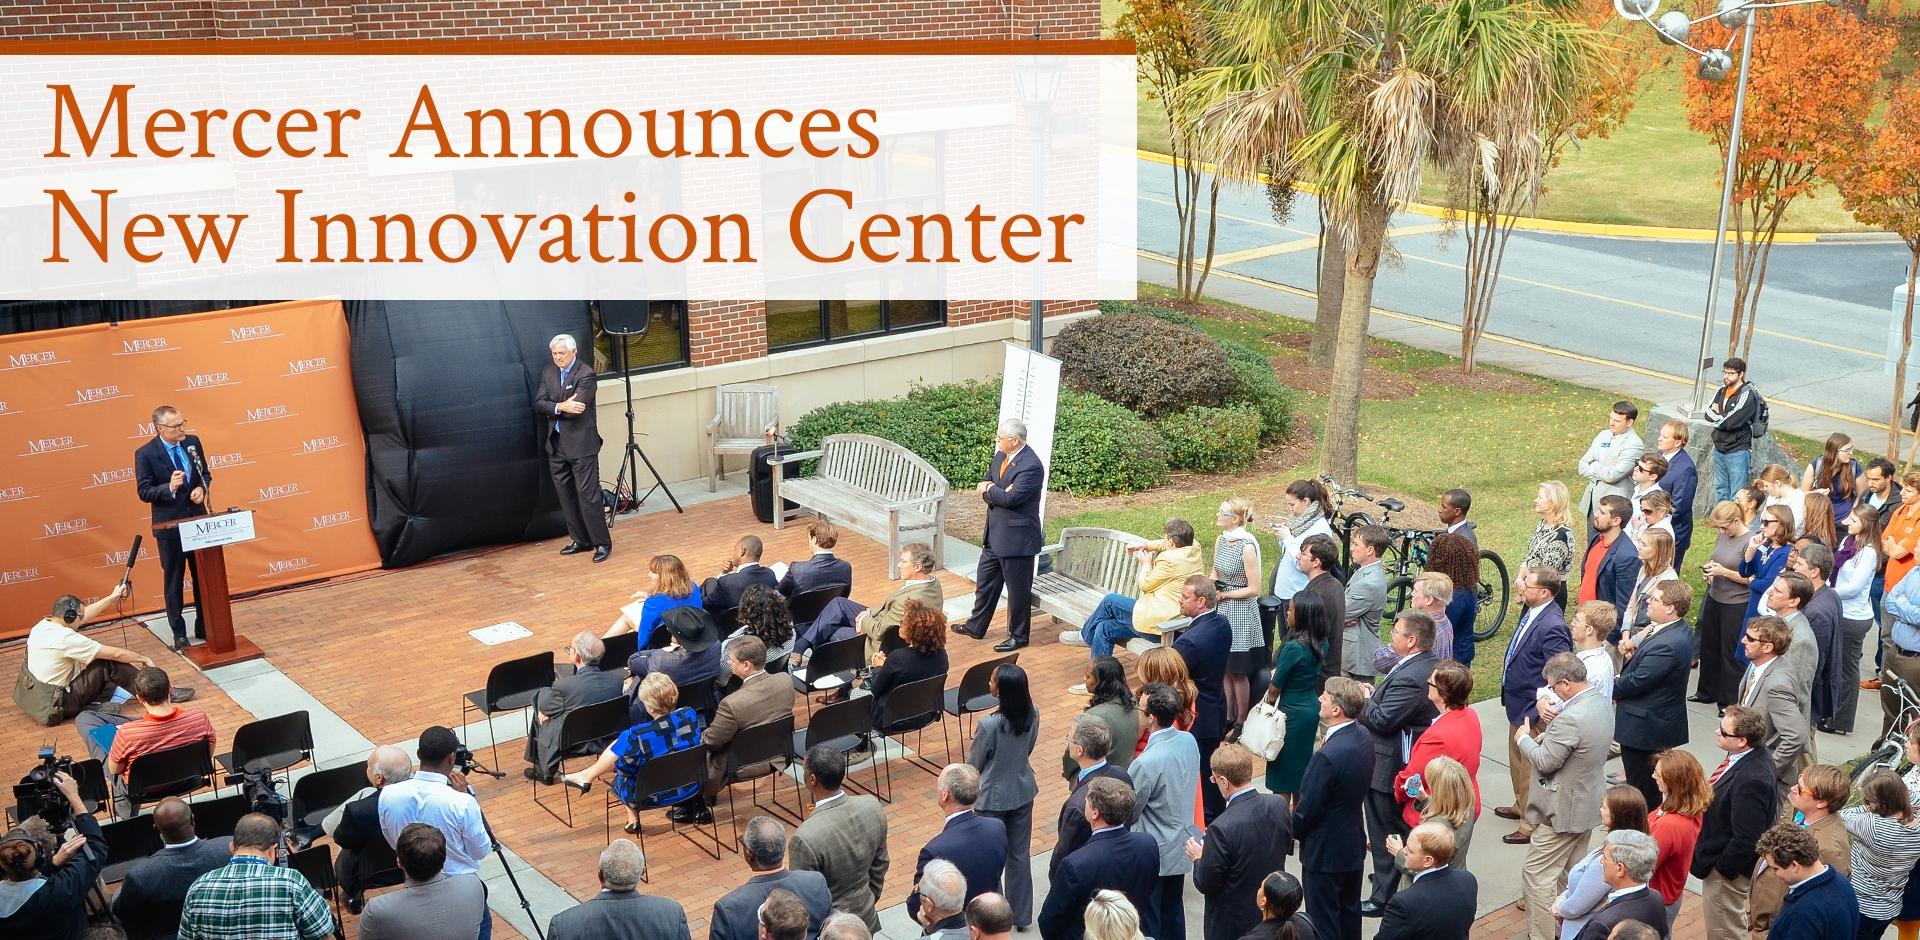 Mercer Launches Innovation Center to Boost Entrepreneurship, Create 21st Century Jobs in Middle Georgia